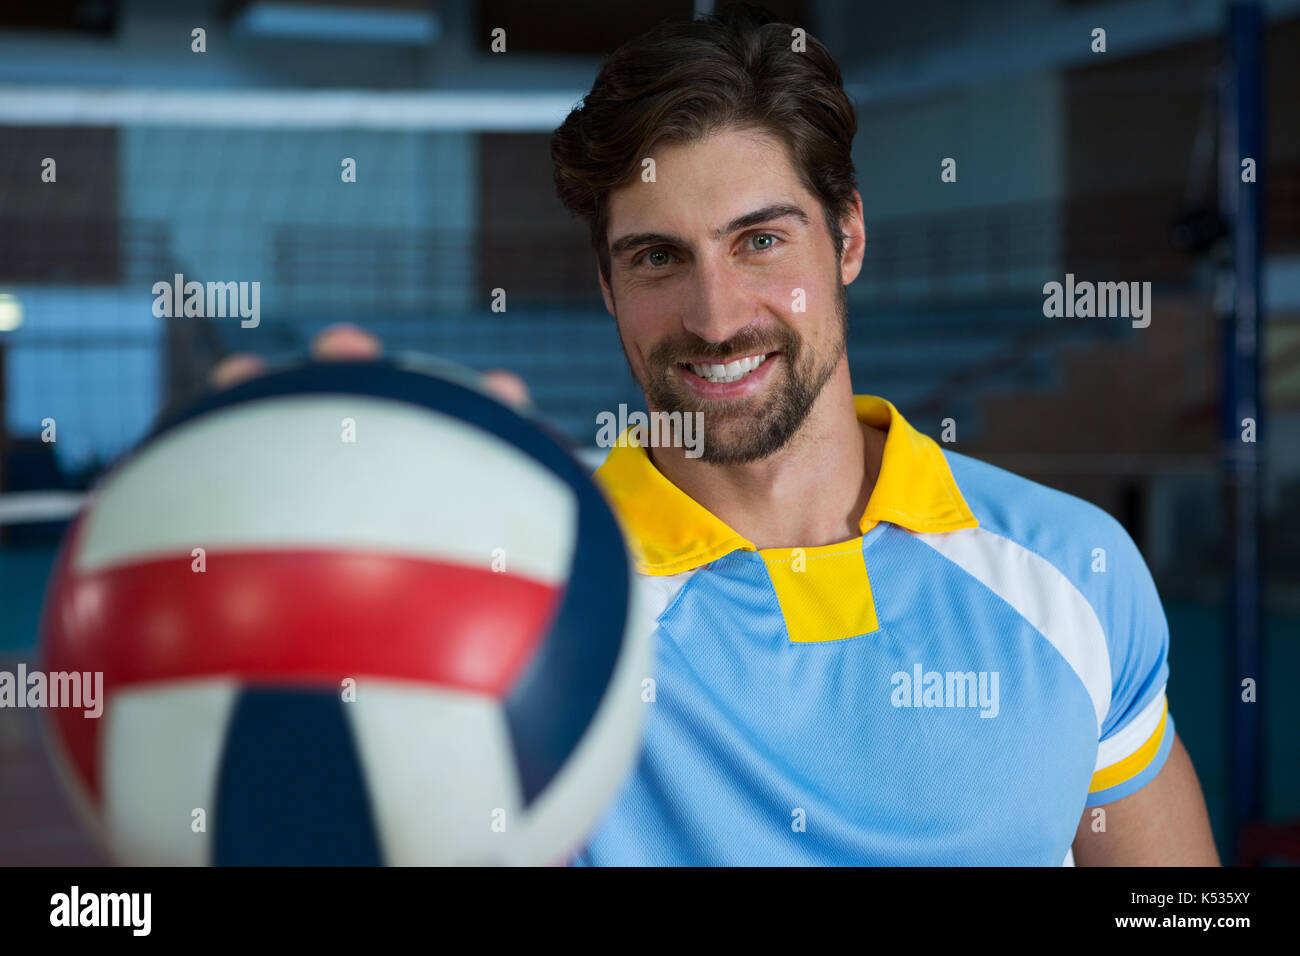 Portrait of male sportsperson with volleyball at court - Stock Image